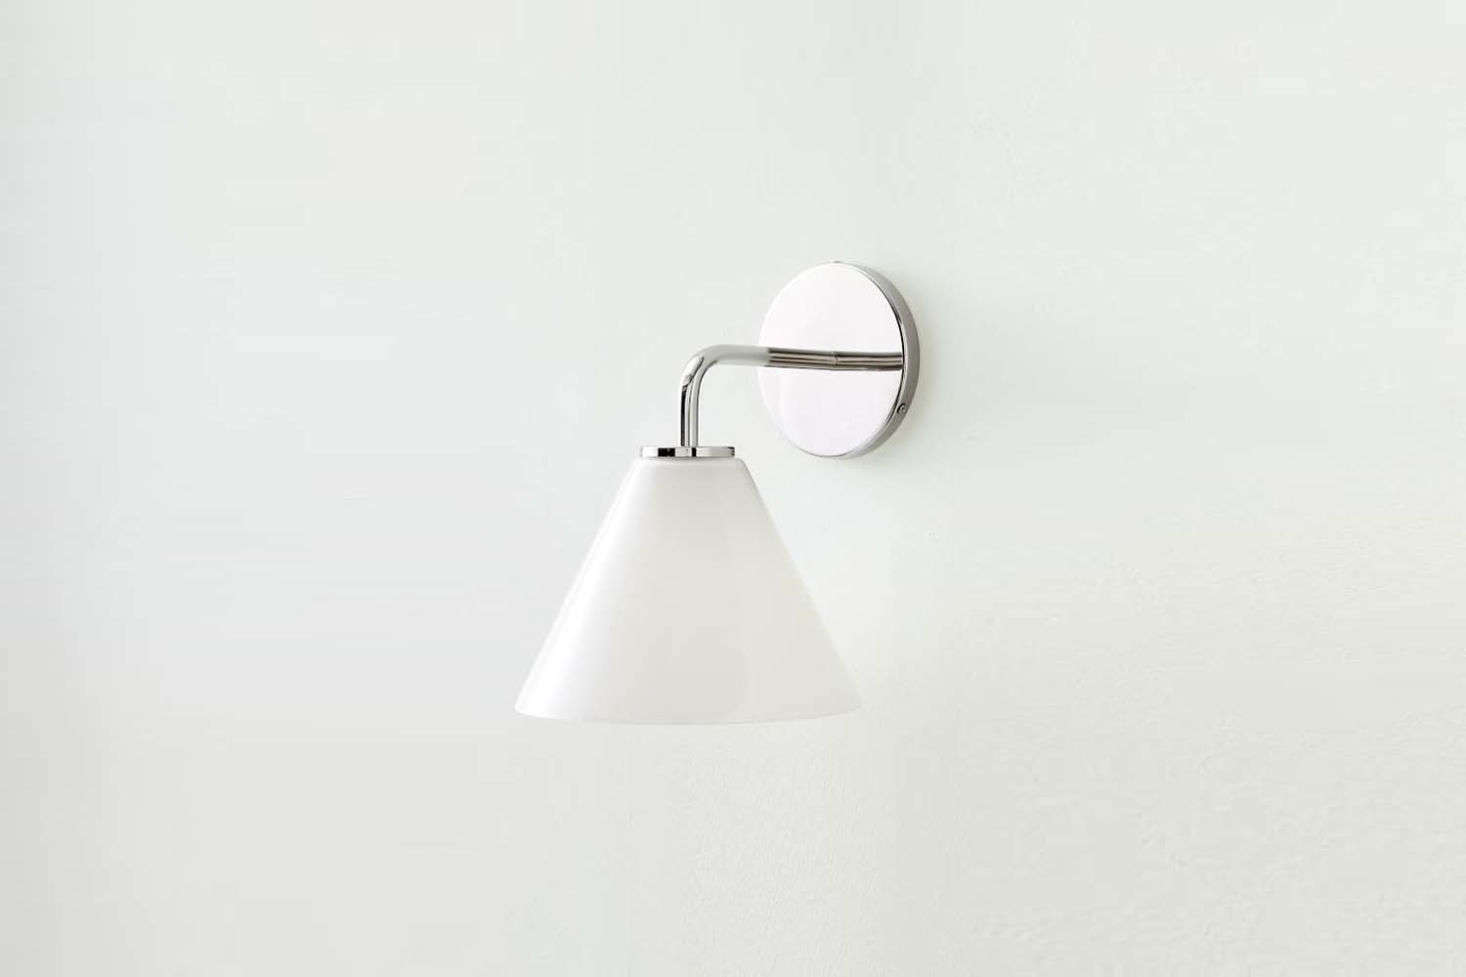 West Elm seems to always have a classic-looking wall sconce available. Their latest is the Sculptural Glass Cone Sconce in Milk with four choices of hardware finishes; $79.